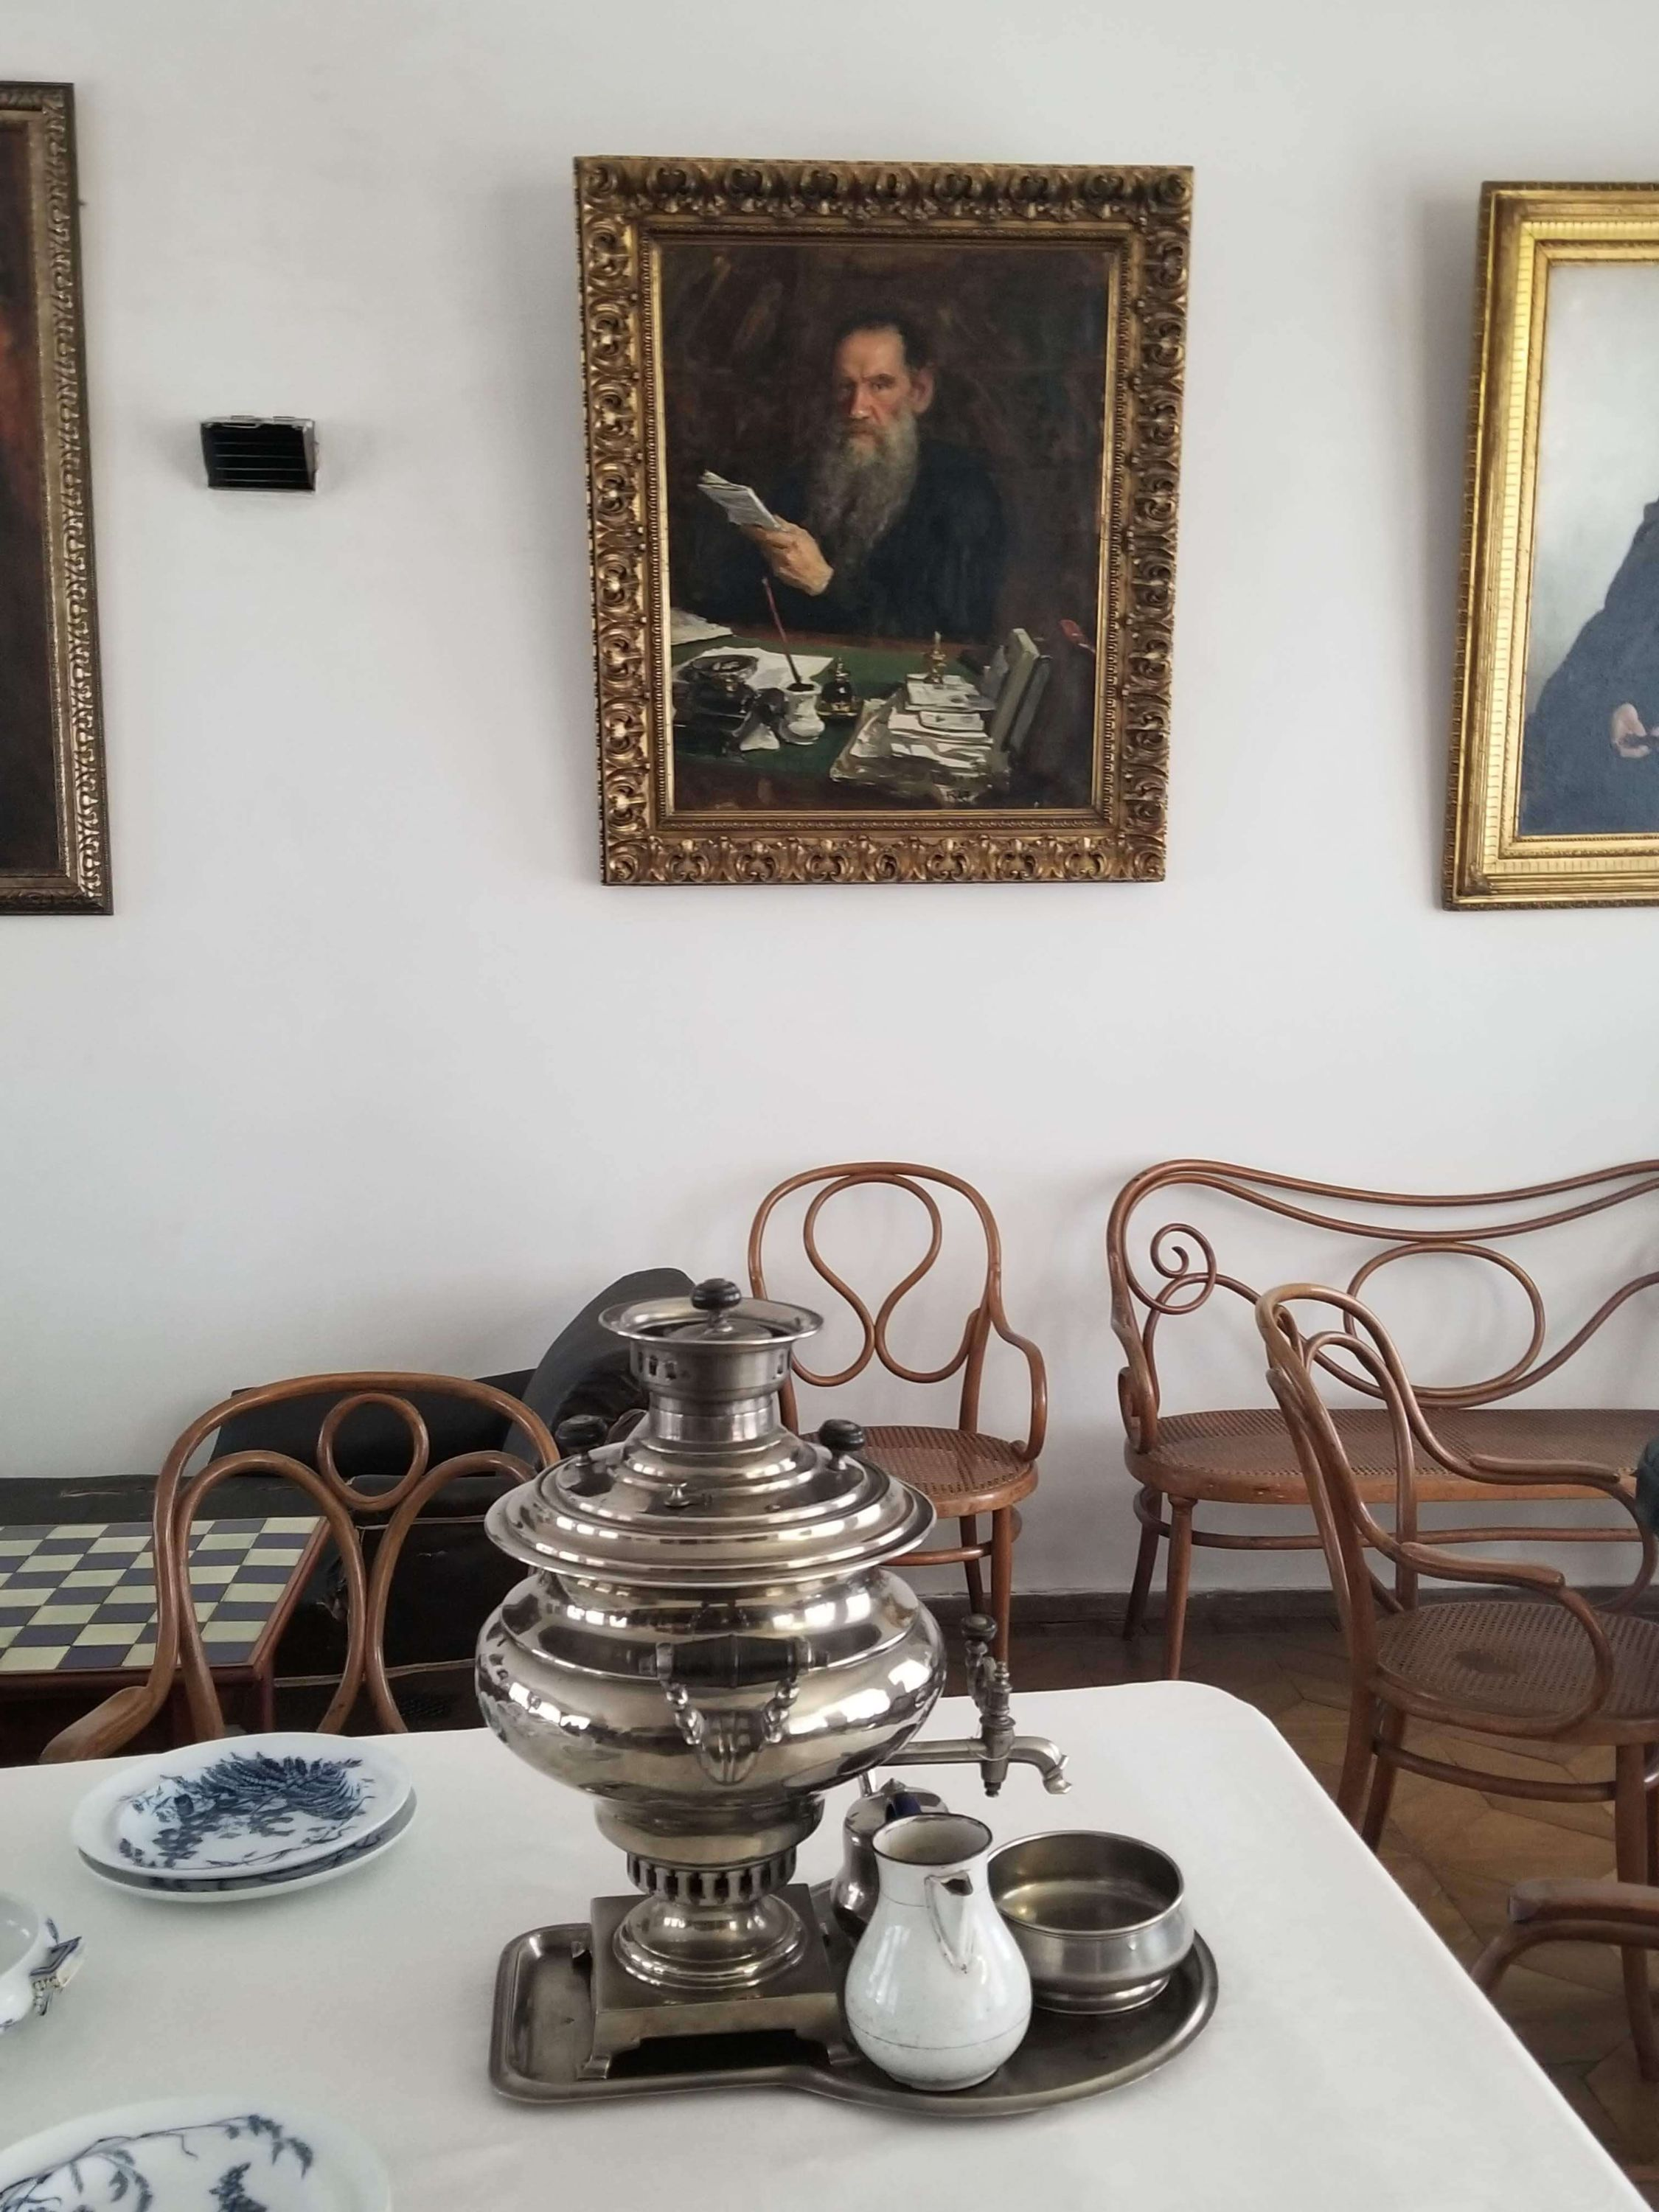 Tolstoy's house with samovar